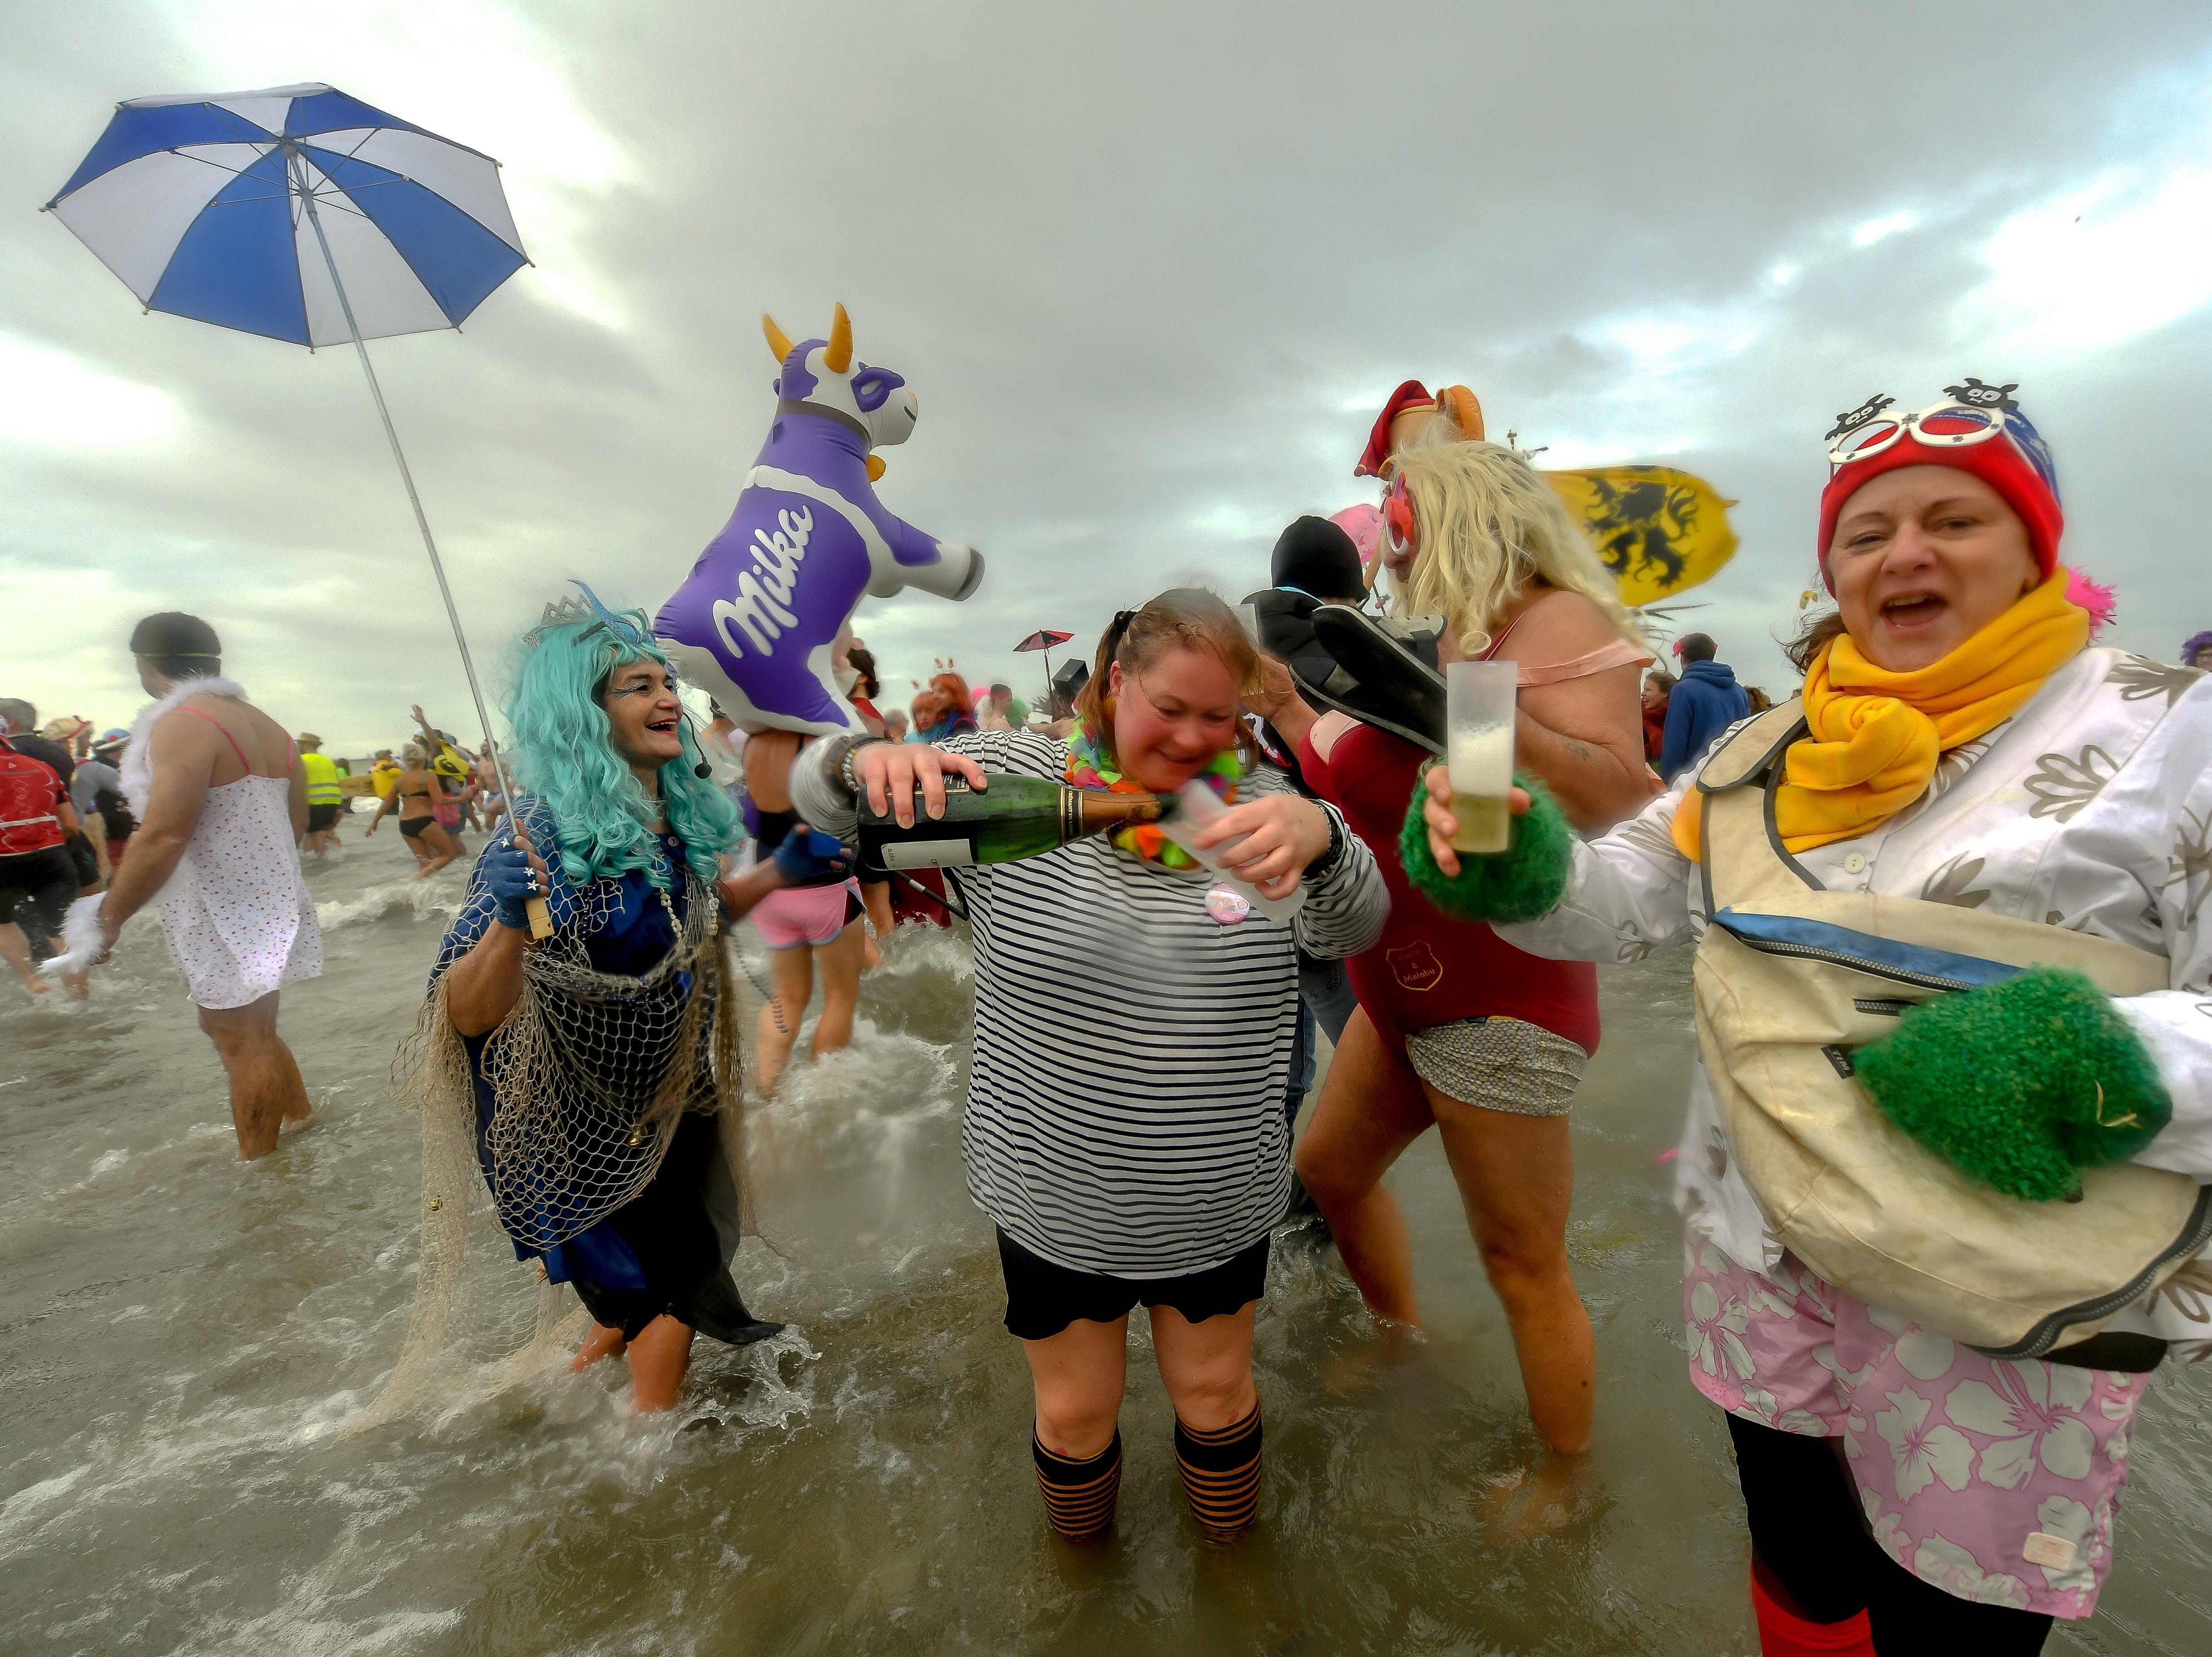 """Revelers take part in the traditional """"Bain des Givres"""" as part of the New Year's celebrations on Jan. 1, 2019 at Malo-Les-Bains beach in Dunkirk, northern France."""